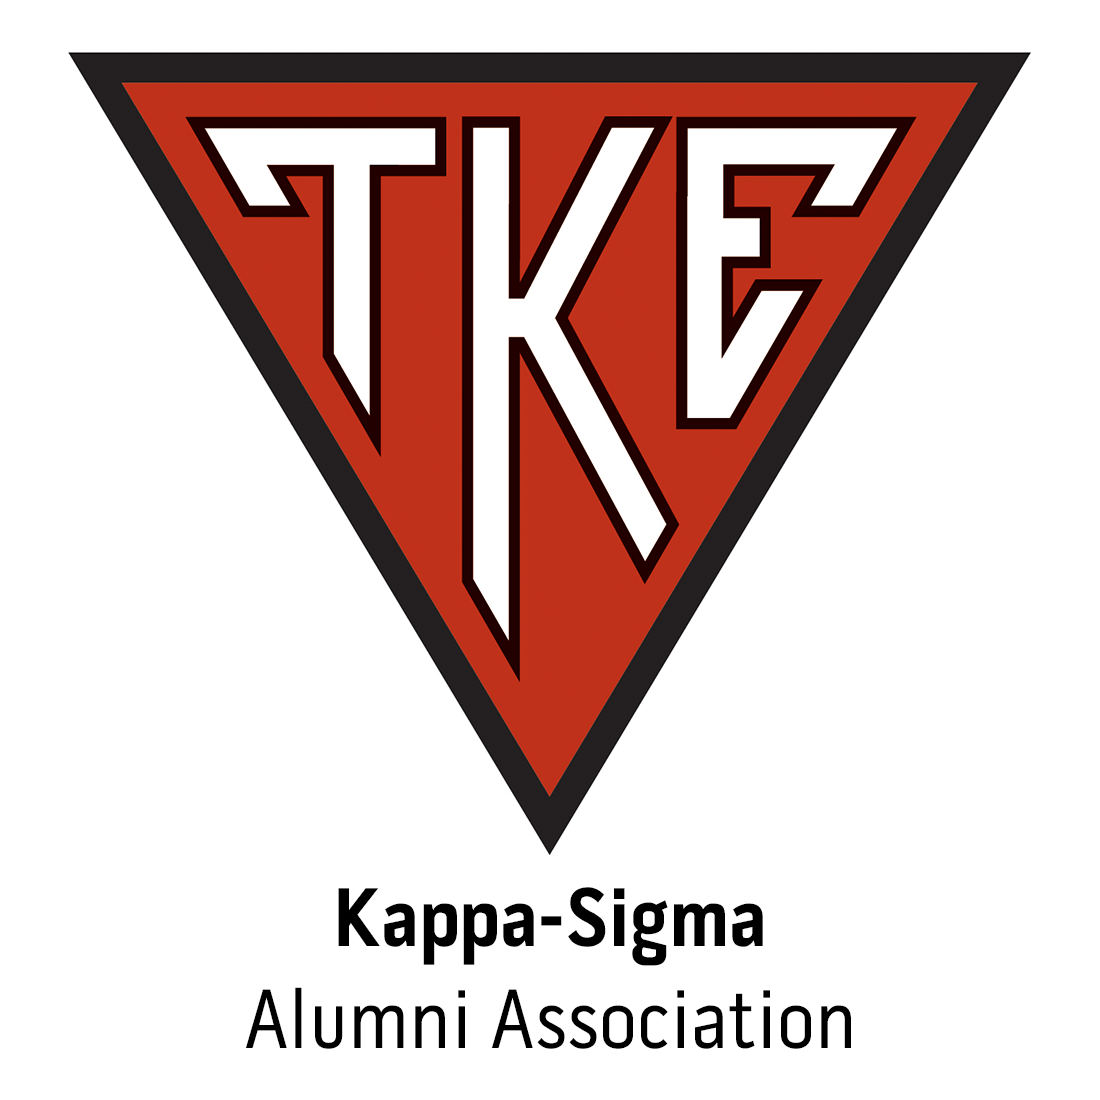 Kappa-Sigma Alumni Association Alumni at City College of New York